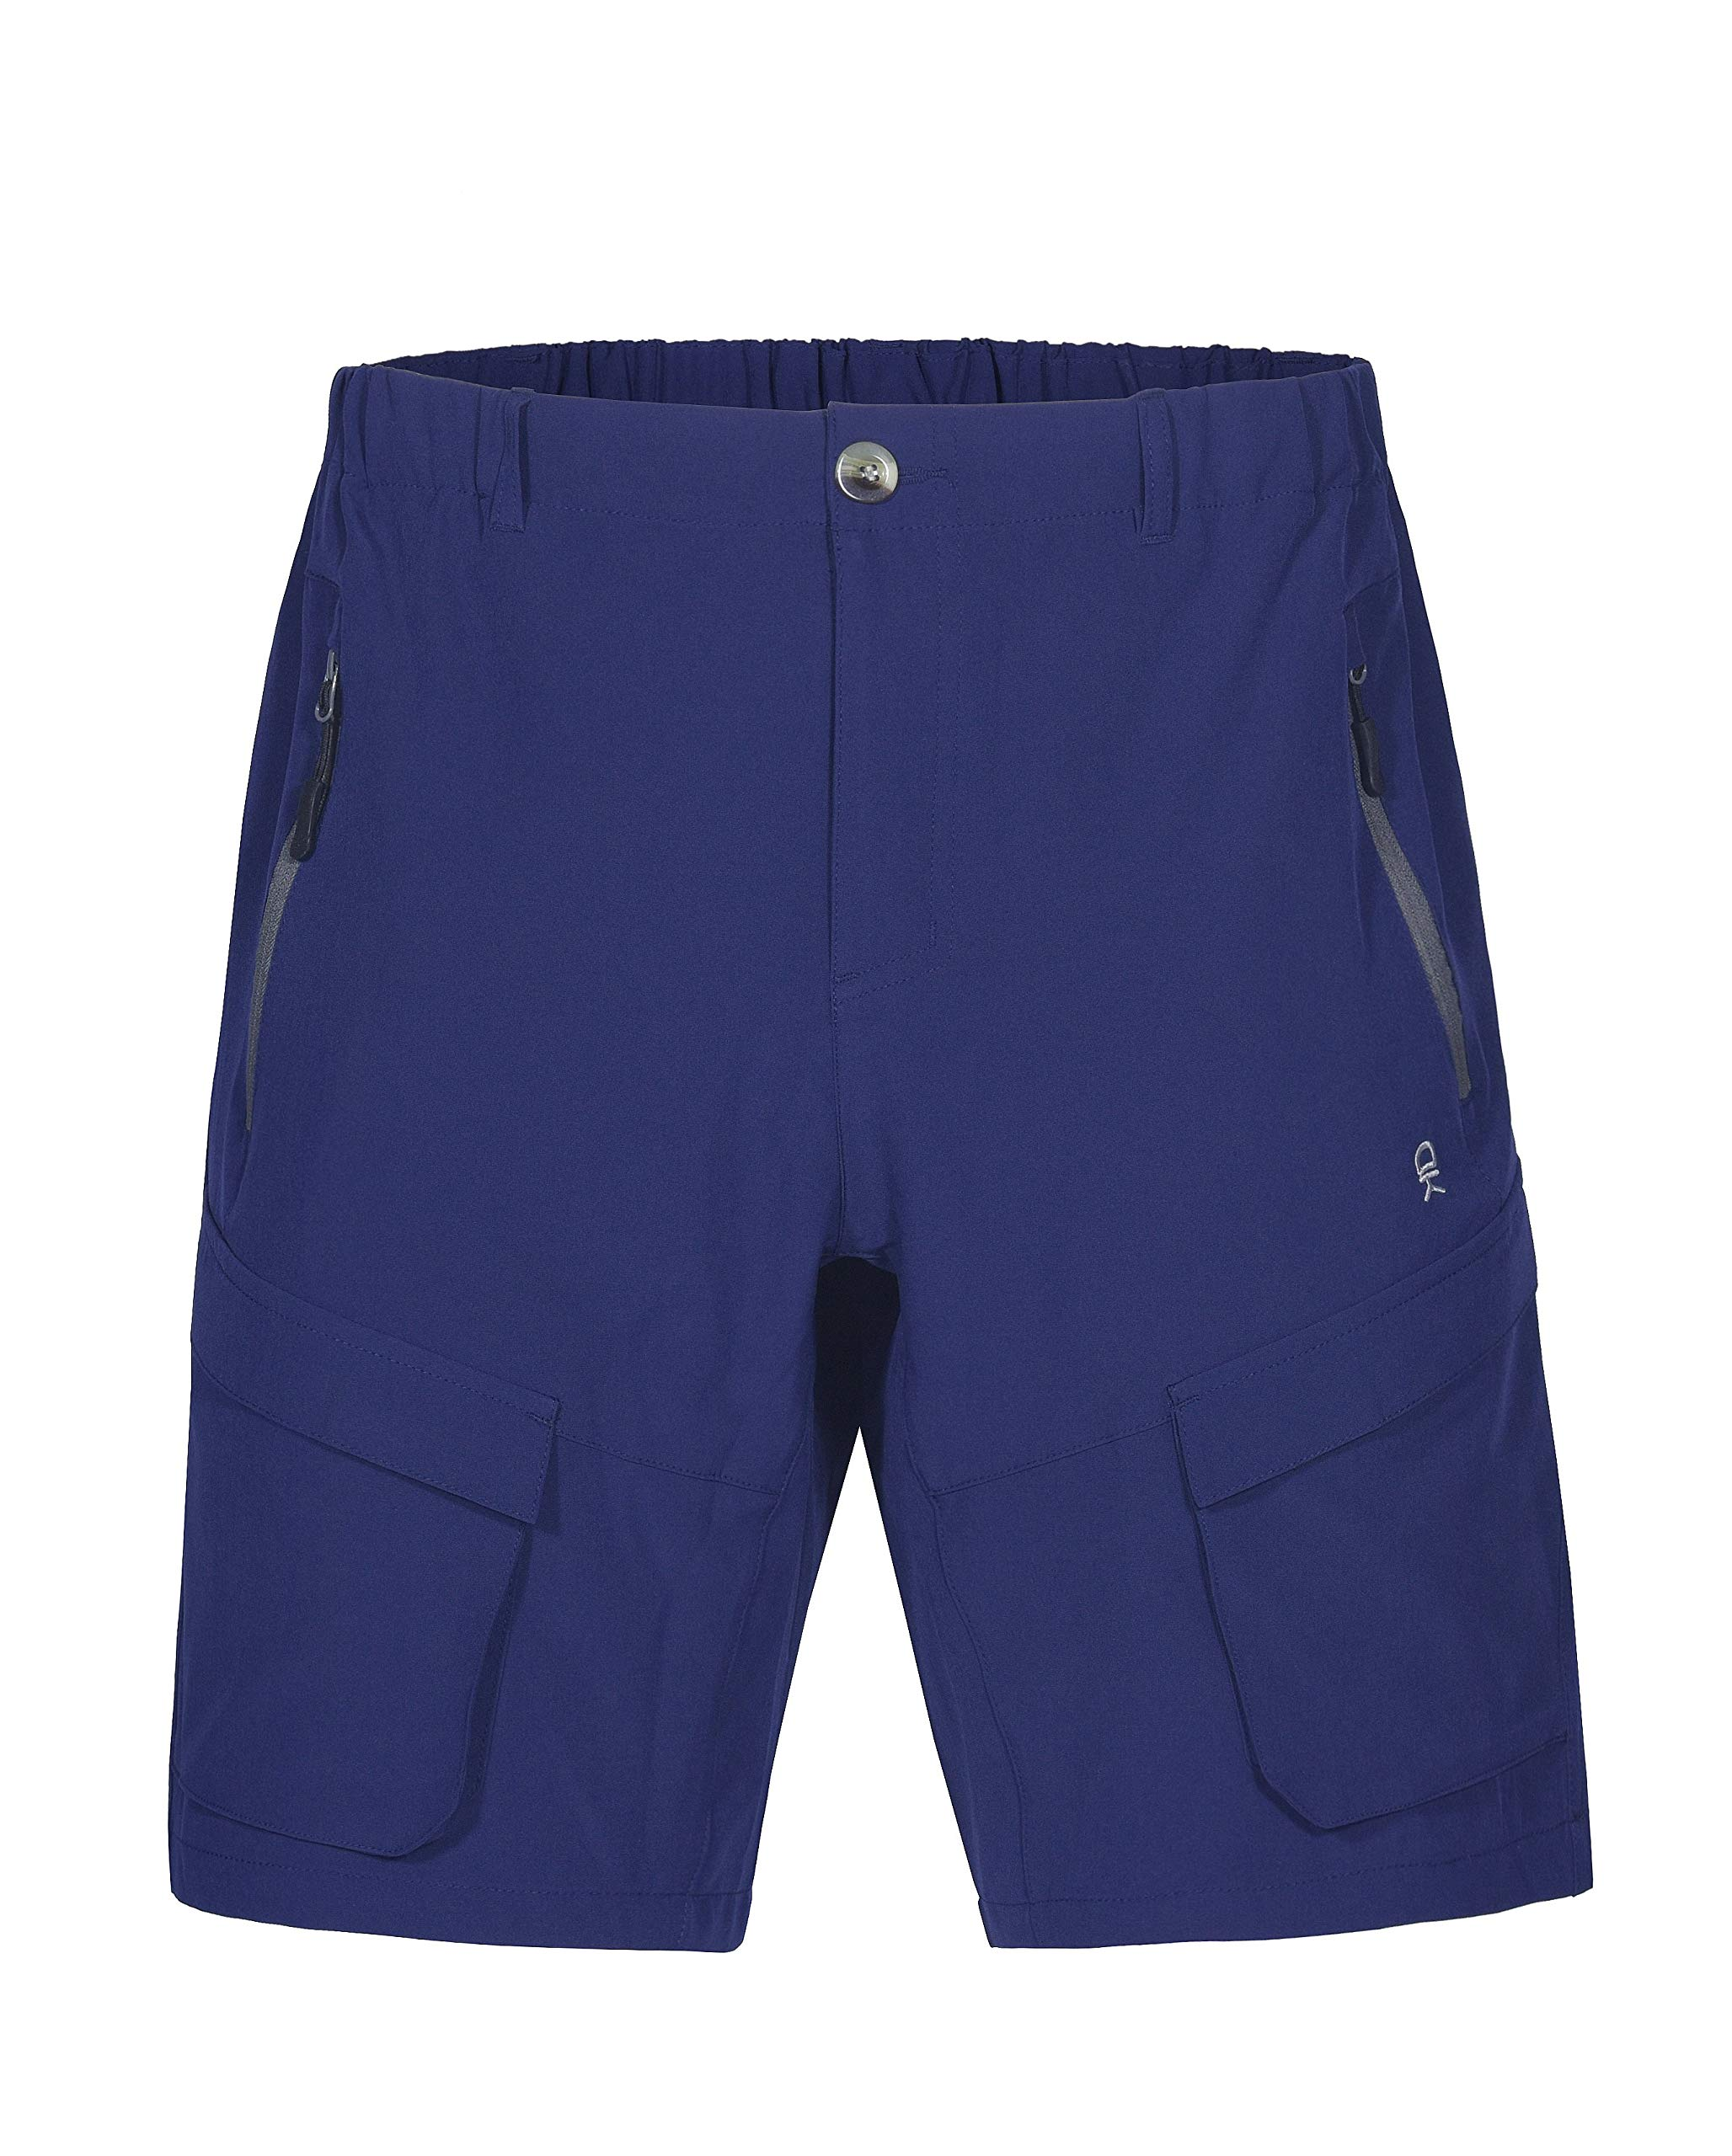 Little Donkey Andy Men's Stretch Quick Dry Cargo Shorts for Hiking, Camping, Travel Navy Size S by Little Donkey Andy